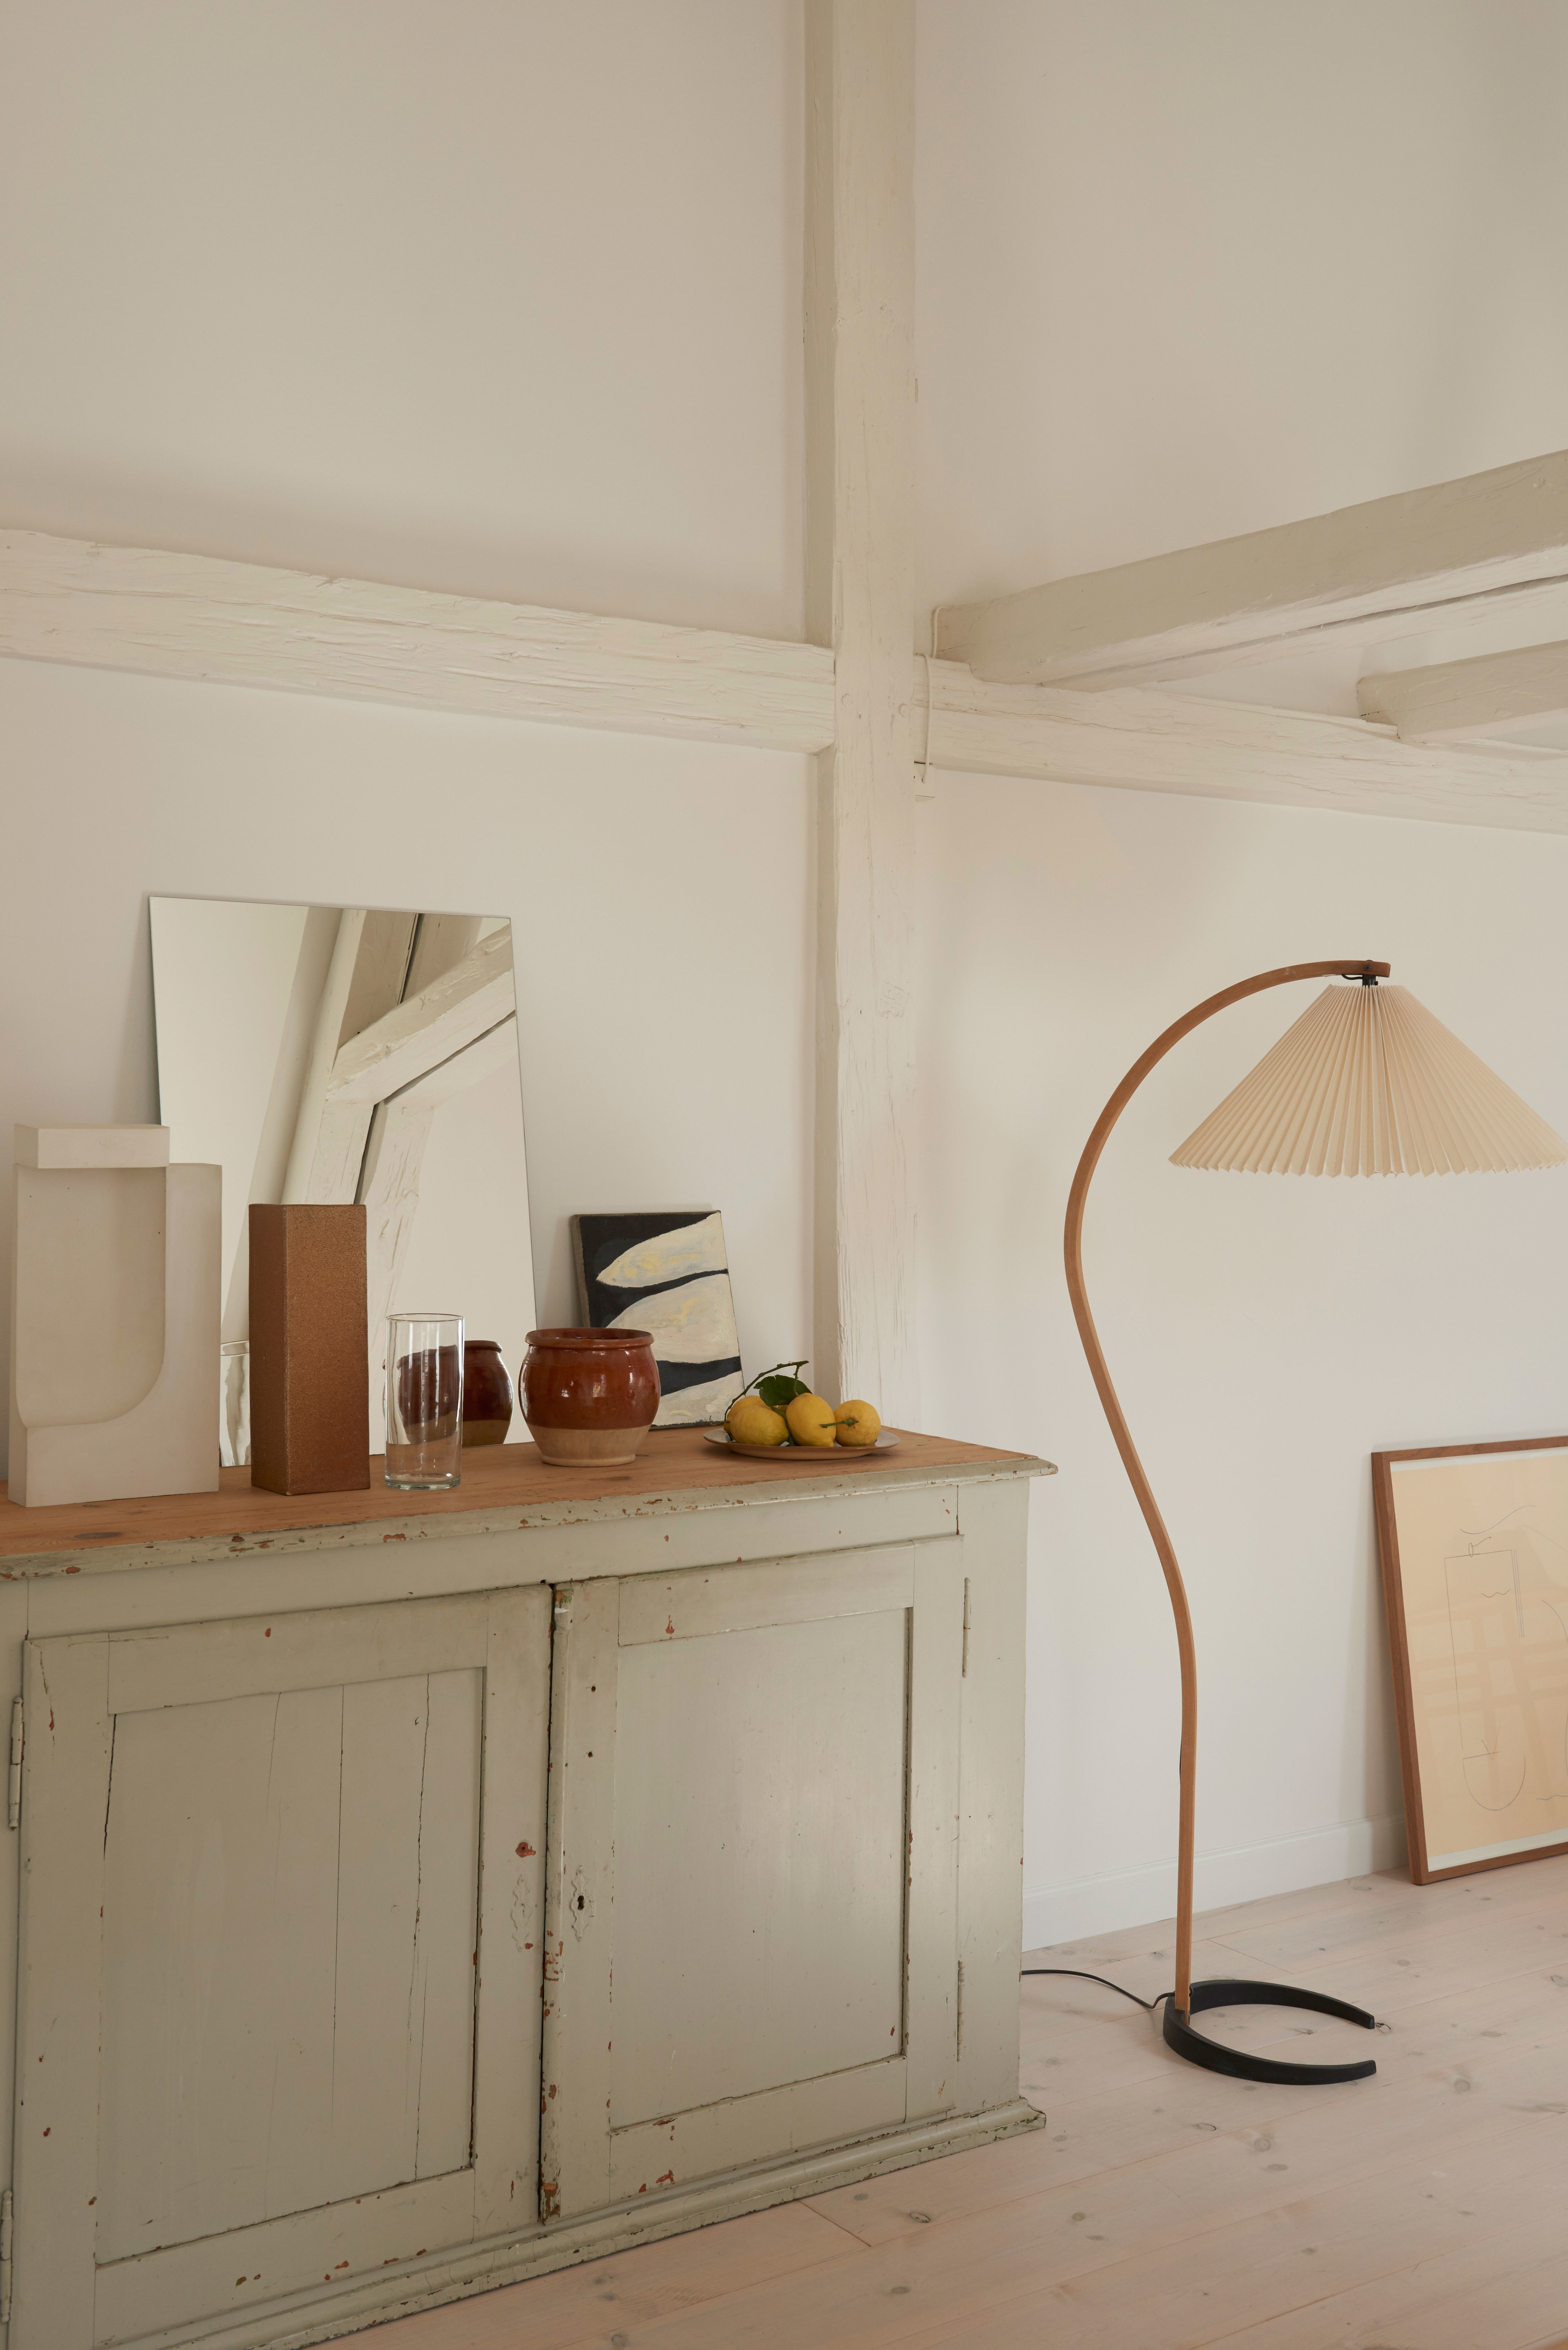 A Light-Filled Copenhagen Apartment With Old Bones and a Youthful Spirit Photos | Architectural Digest